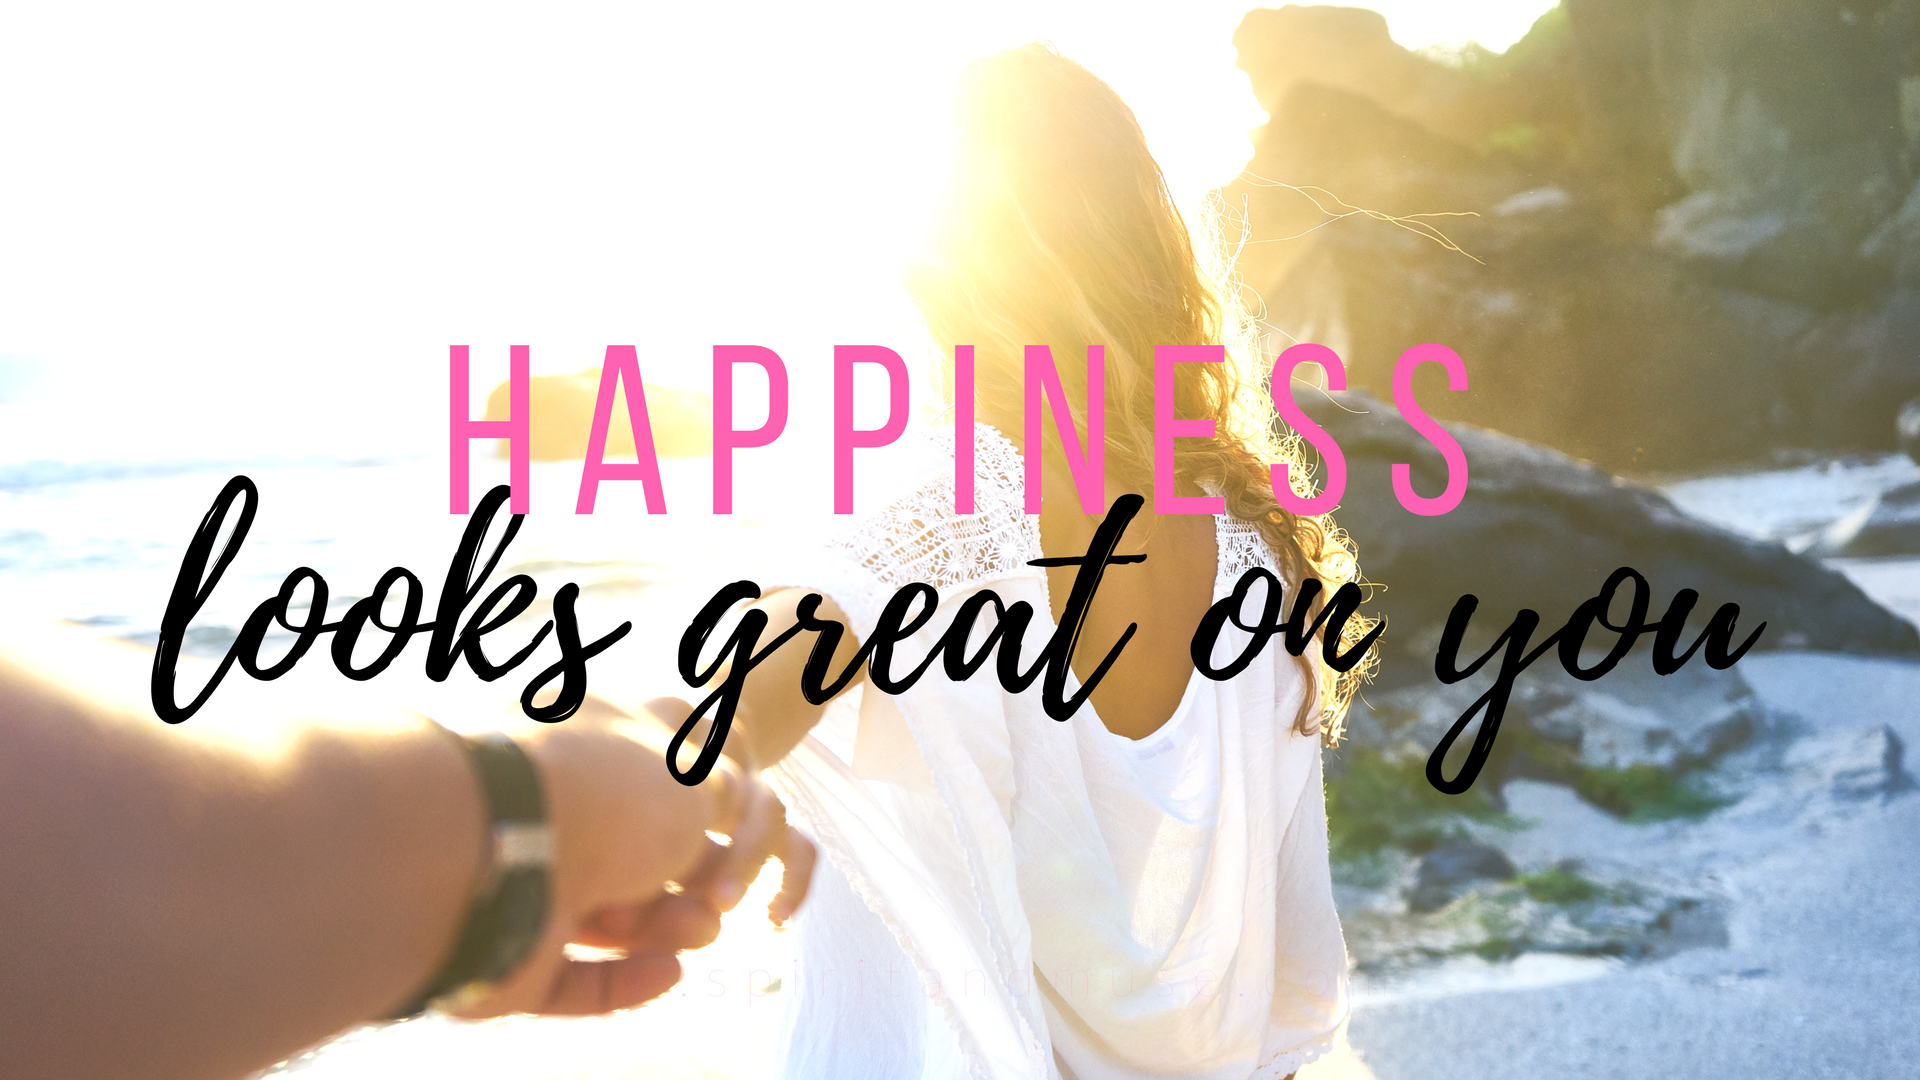 girl boss - happiness - free desktop wallpaper